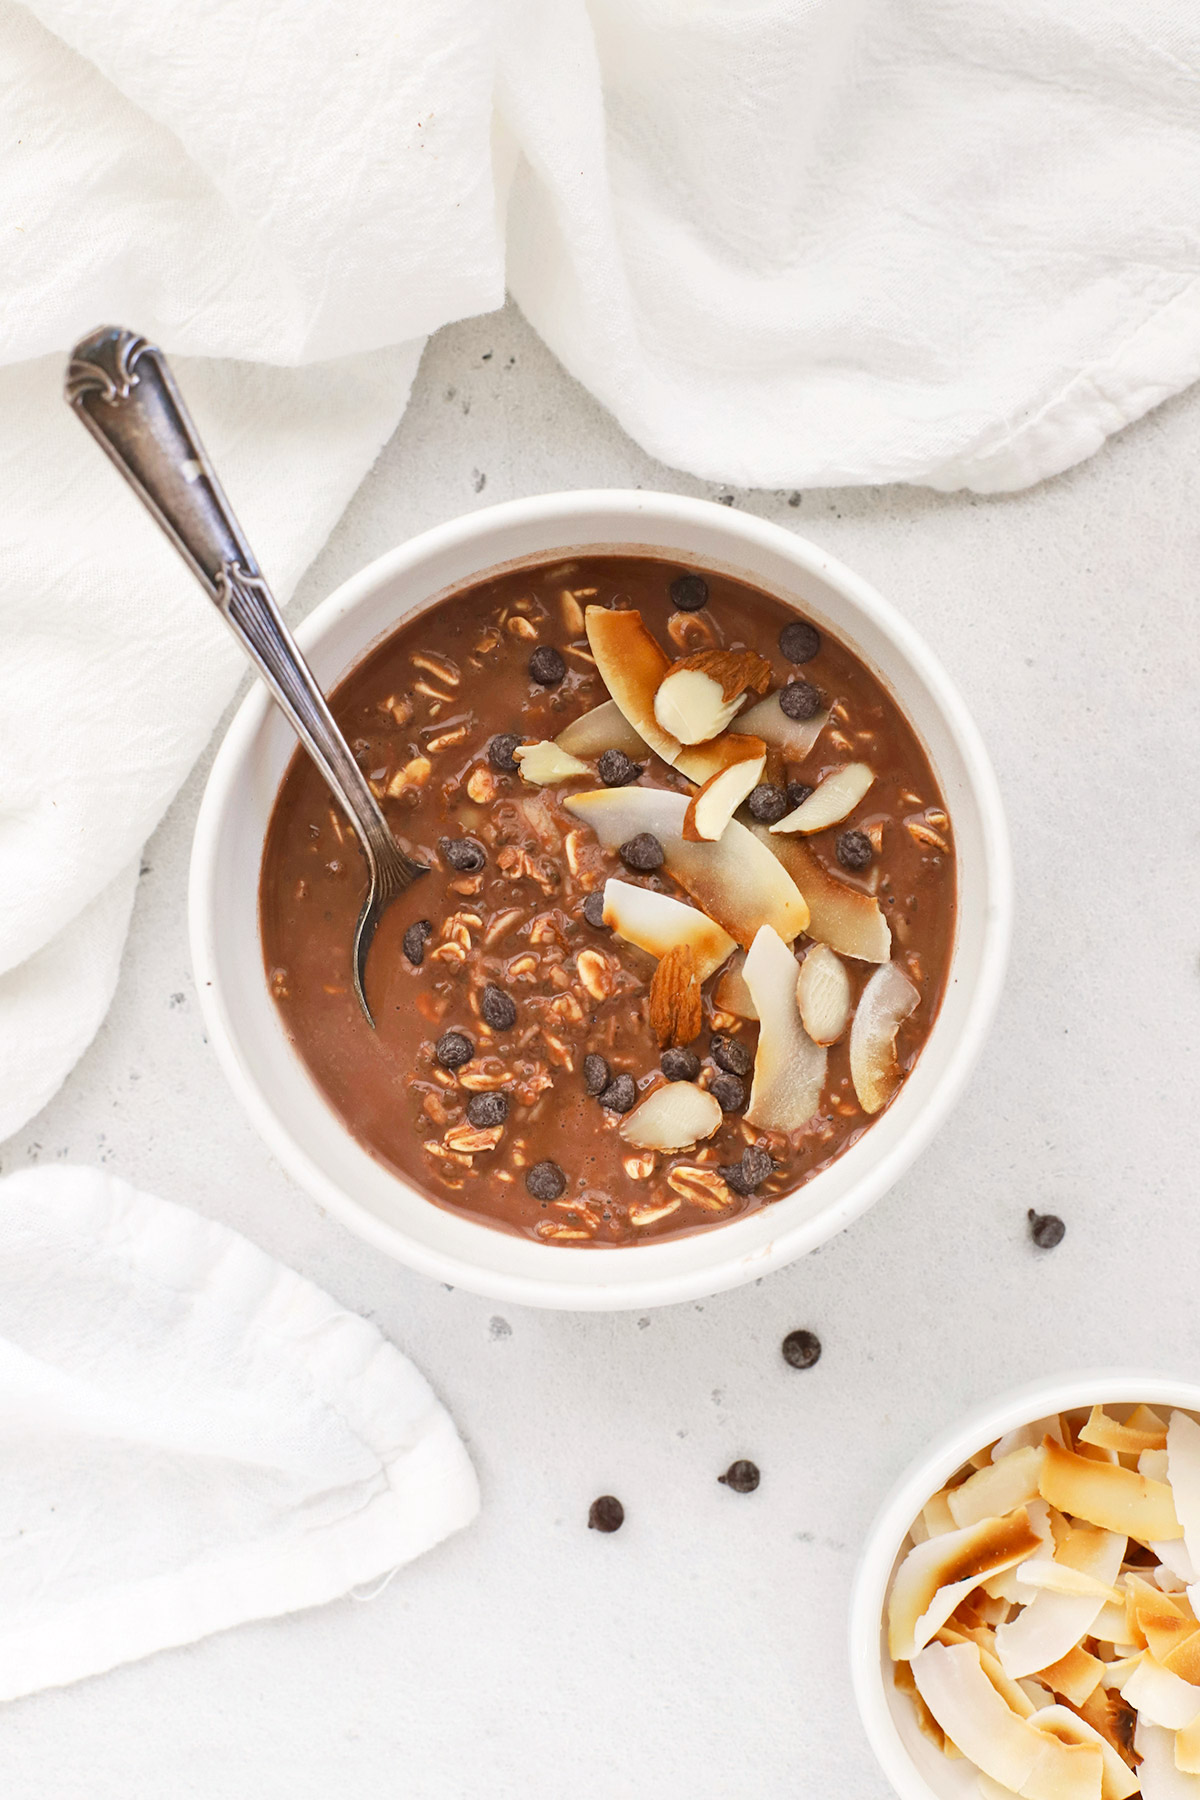 Overhead view of a bowl of almond joy overnight oats topped with chocolate and coconut.